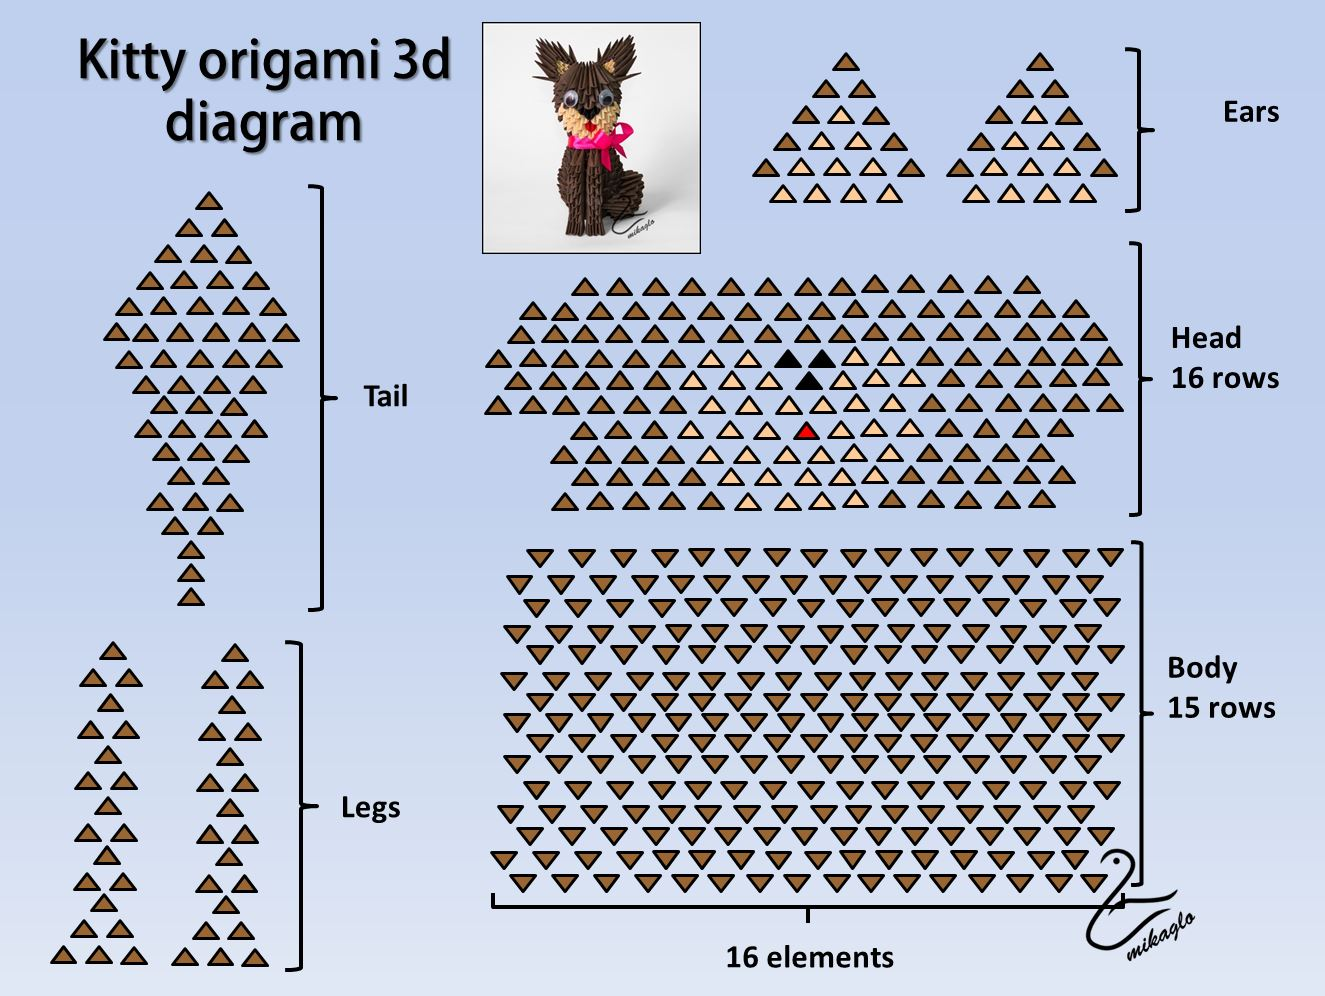 1000+ images about origami on Pinterest | 3d origami ... - photo#39